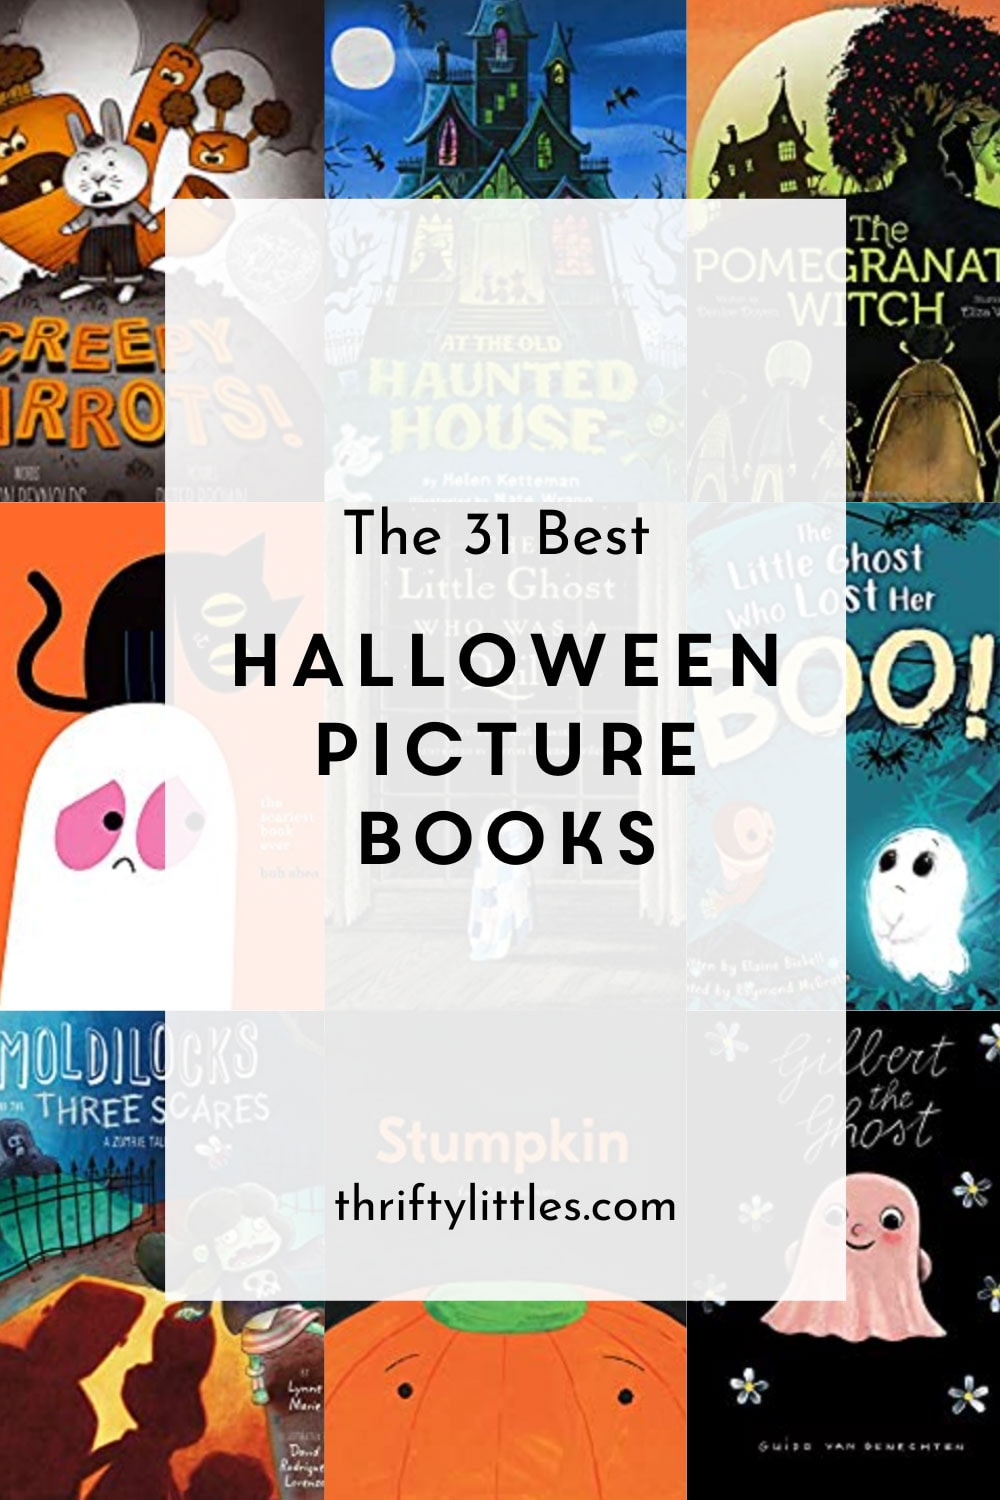 The 31 Best Halloween Picture Books